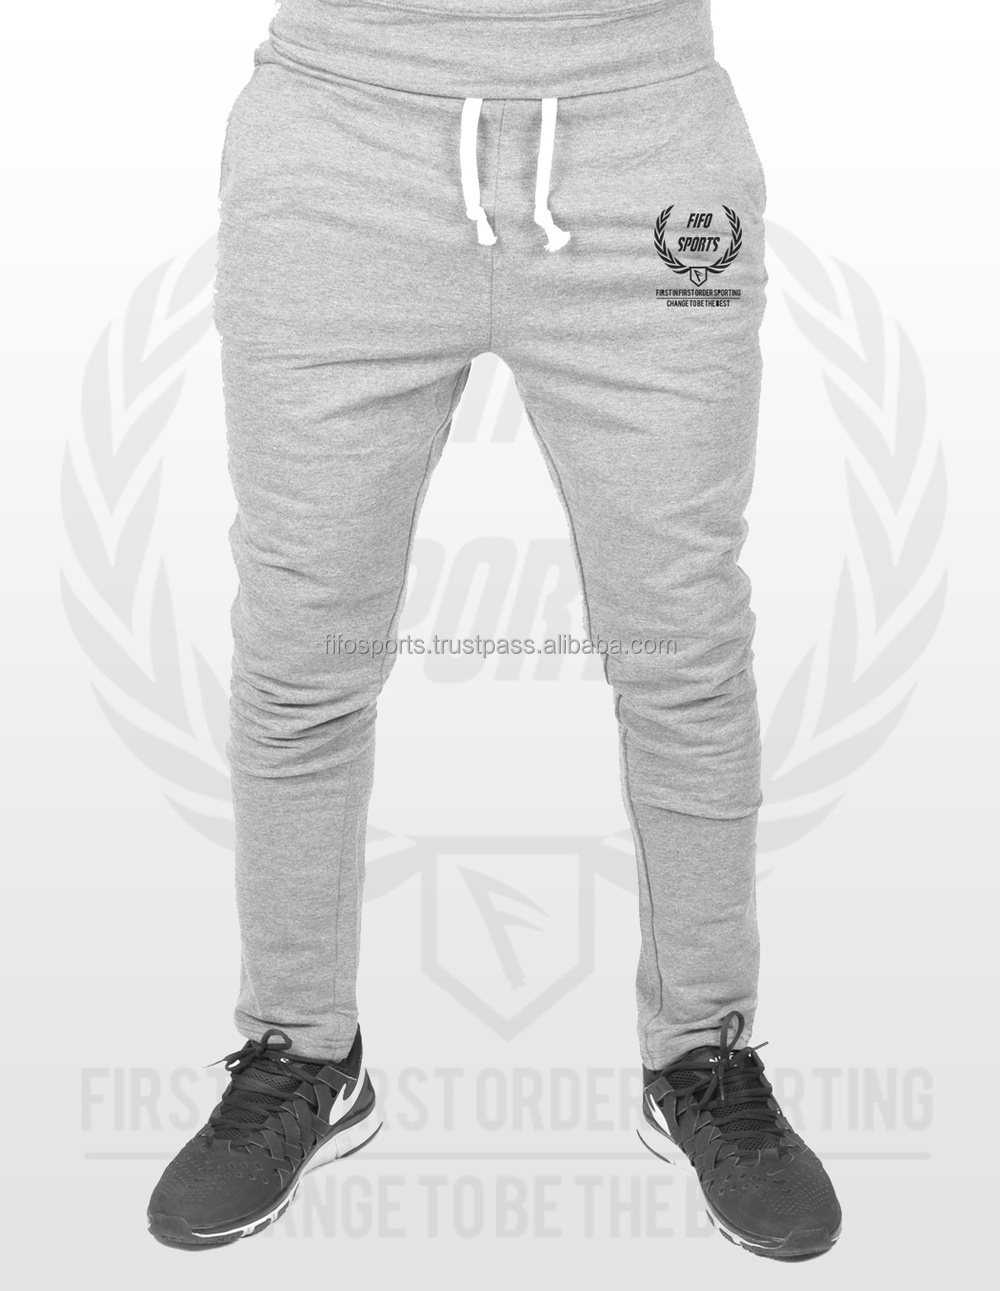 8433bf38e6 3/4 Cotton Polyester Jogger /Tracksuit / Fitness Gym / Sports /Sweat Pants  With Custom Print Logo, View 100% polyester sweat pants, Fifo Sports, As ...